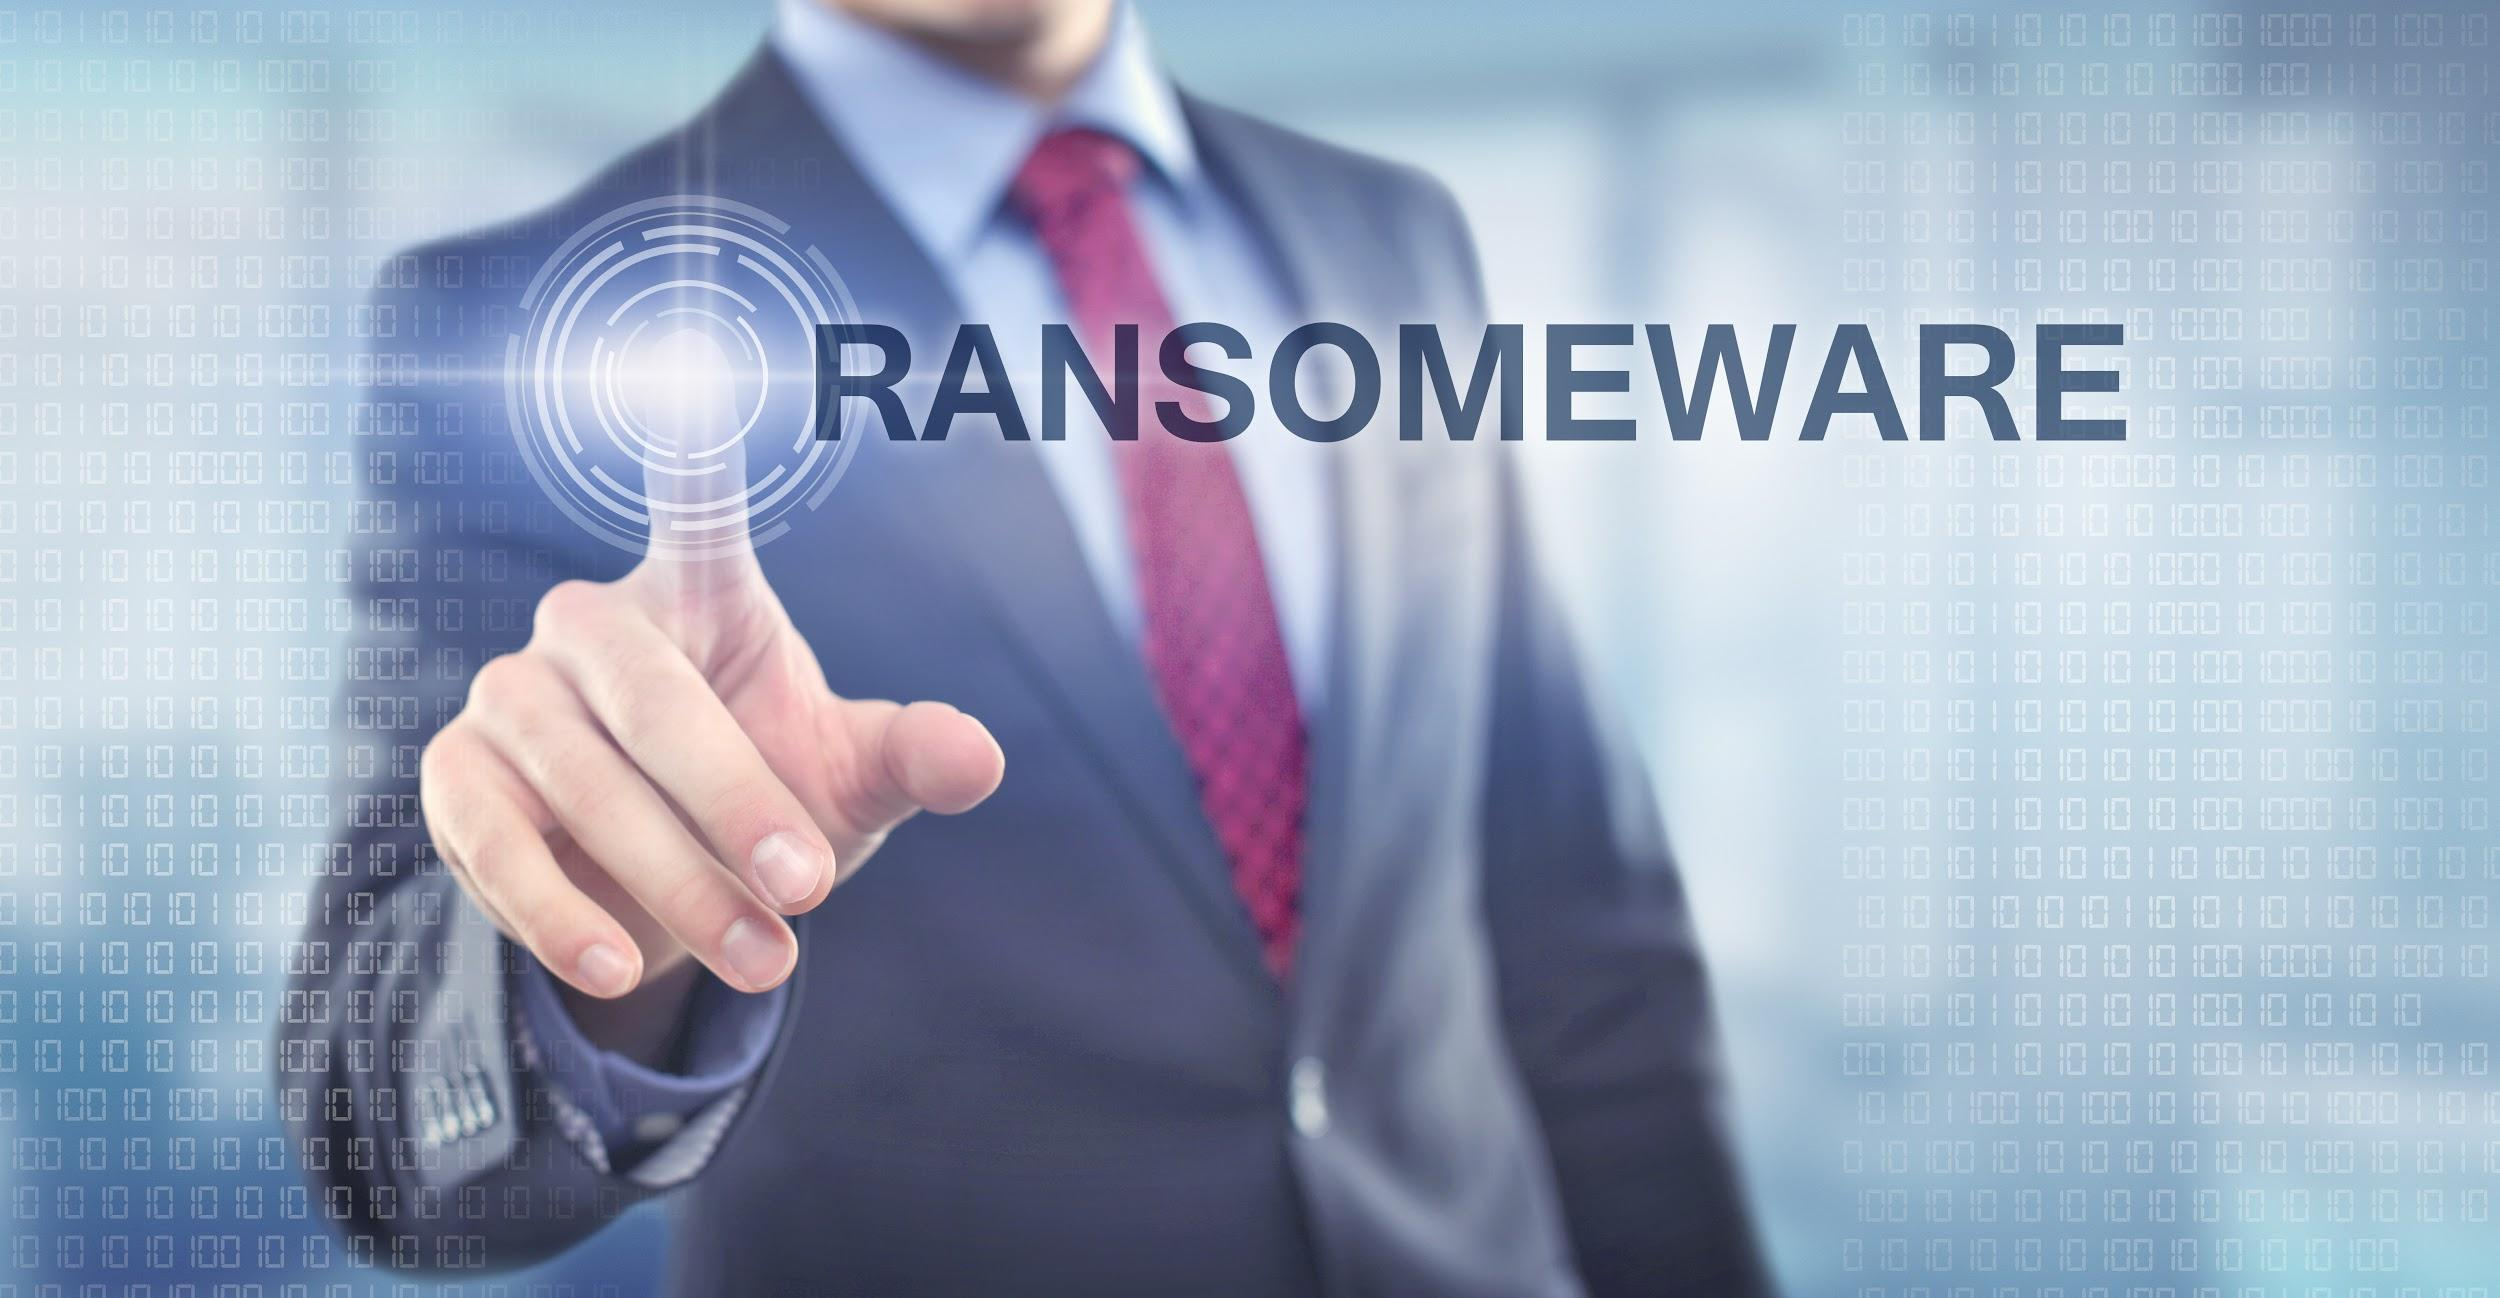 Businessman pressing button on touch screen select Ransomware